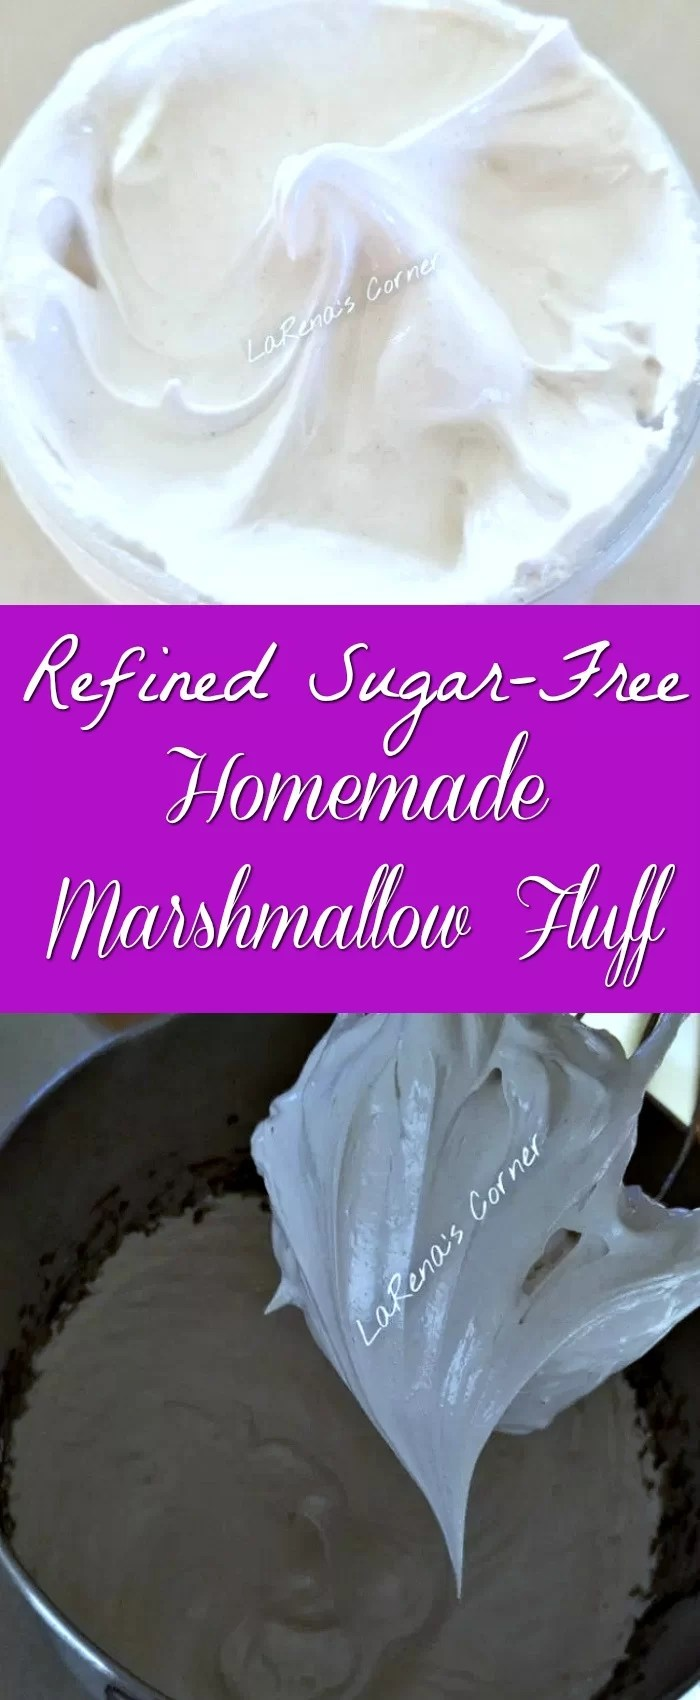 Top: Refined Sugar-Free Homemade Marshmallow Fluff. Bottom: Whipping the marshmallow fluff.